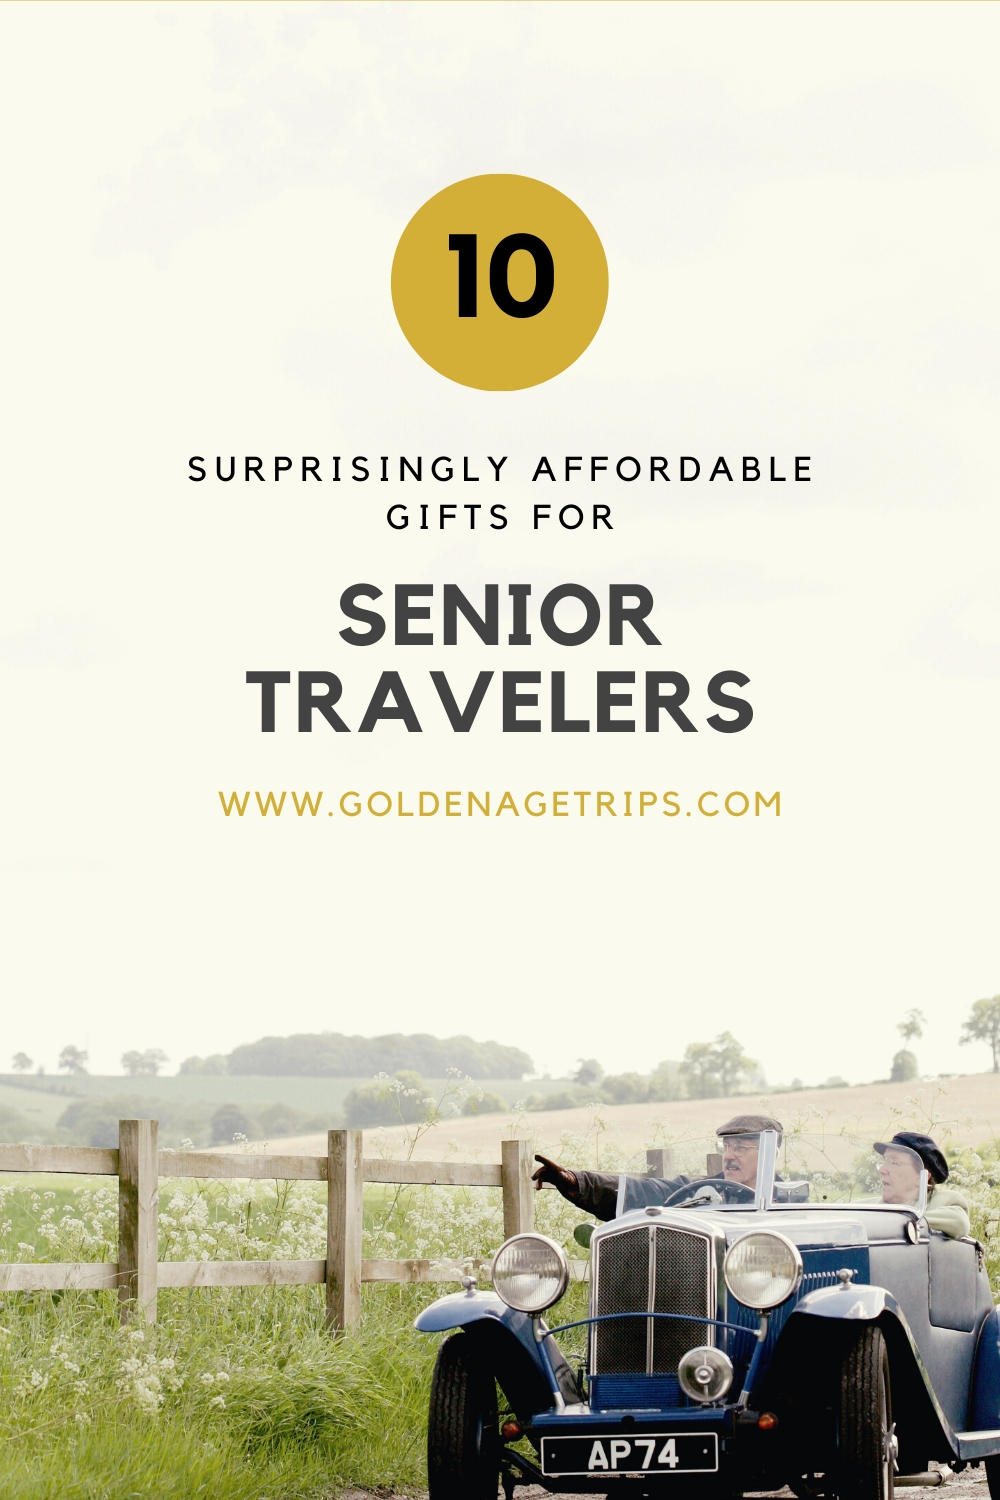 10 Surprisingly Affordable Gifts for Senior Travelers. There is something for every budget and type of traveler. #gifts #seniortravel #seniors #retirementgifts